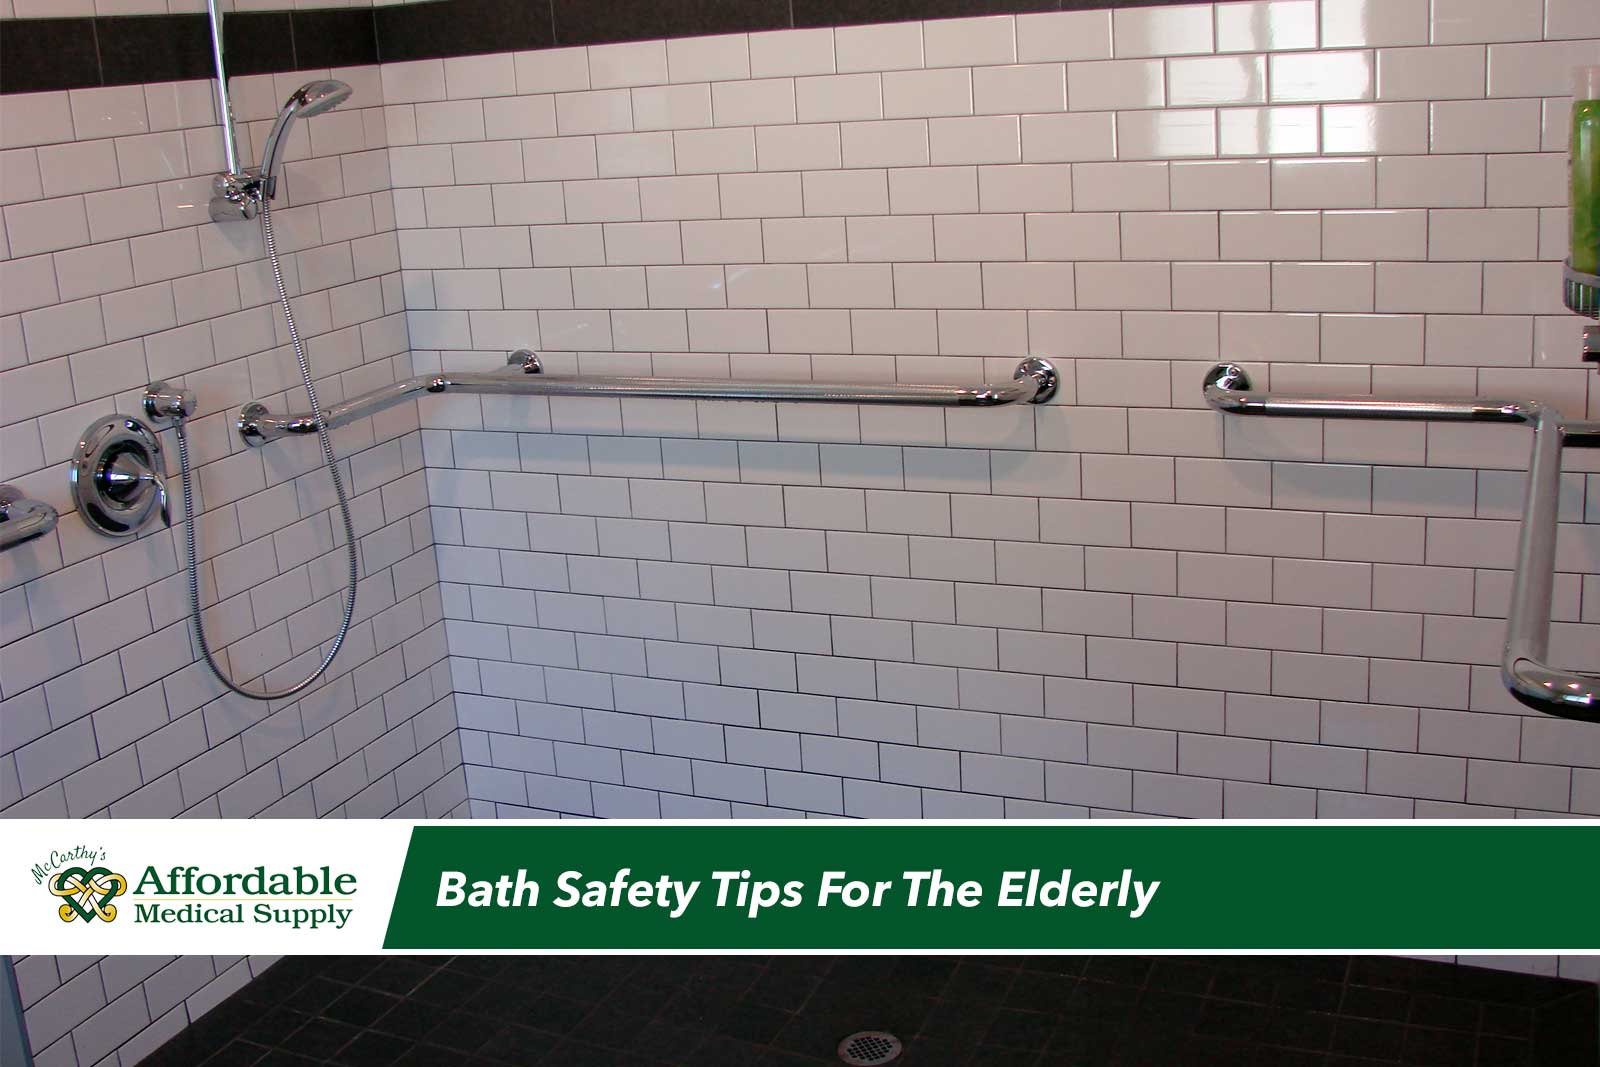 Bath Safety Tips